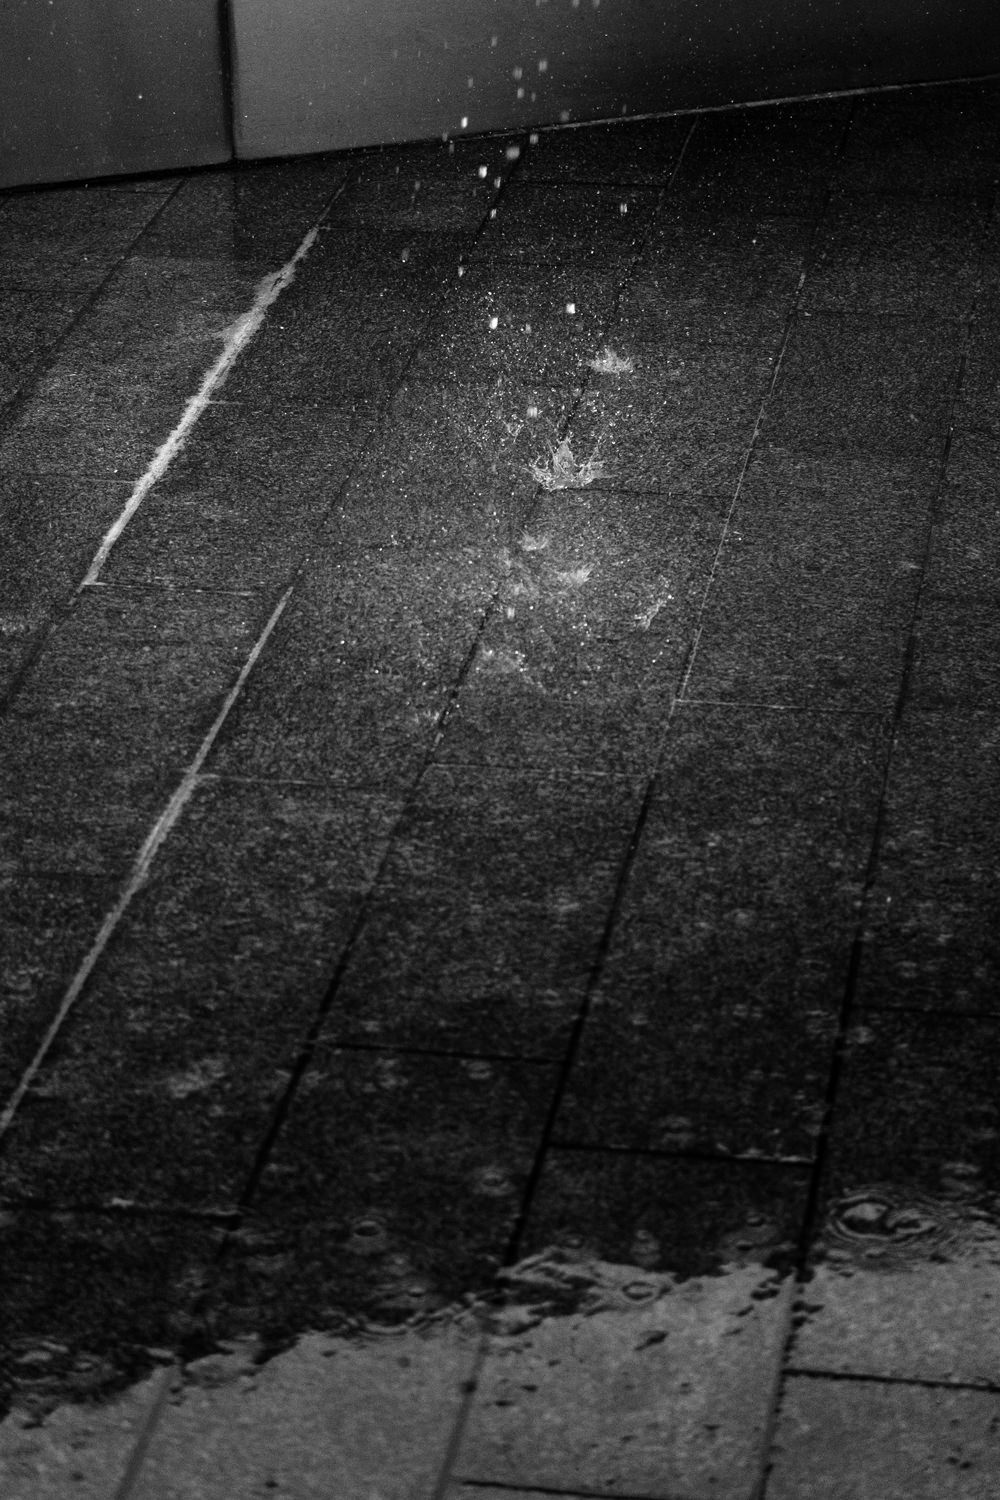 Water droplets falling onto the wet ground. Water's splashing up as the drops hit the ground